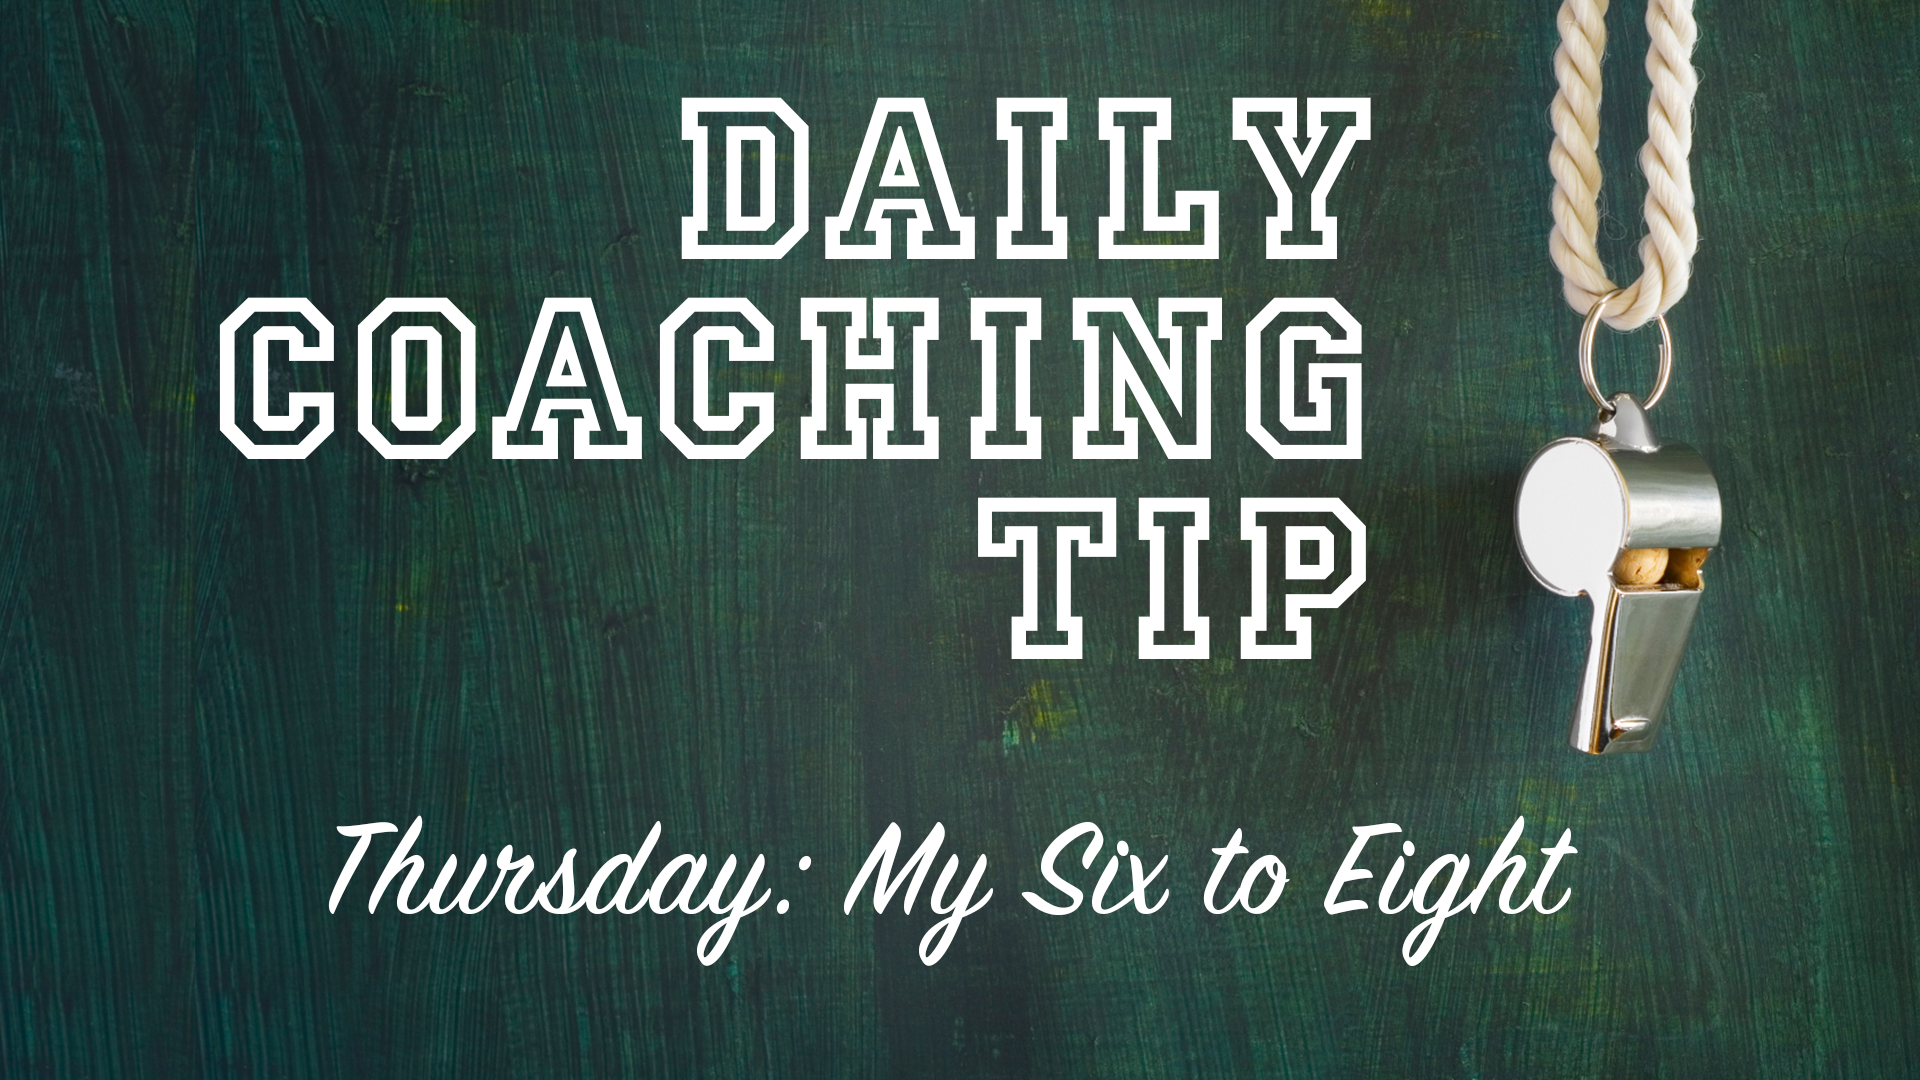 Daily Coaching Tip, Thursday, March 30, 2016